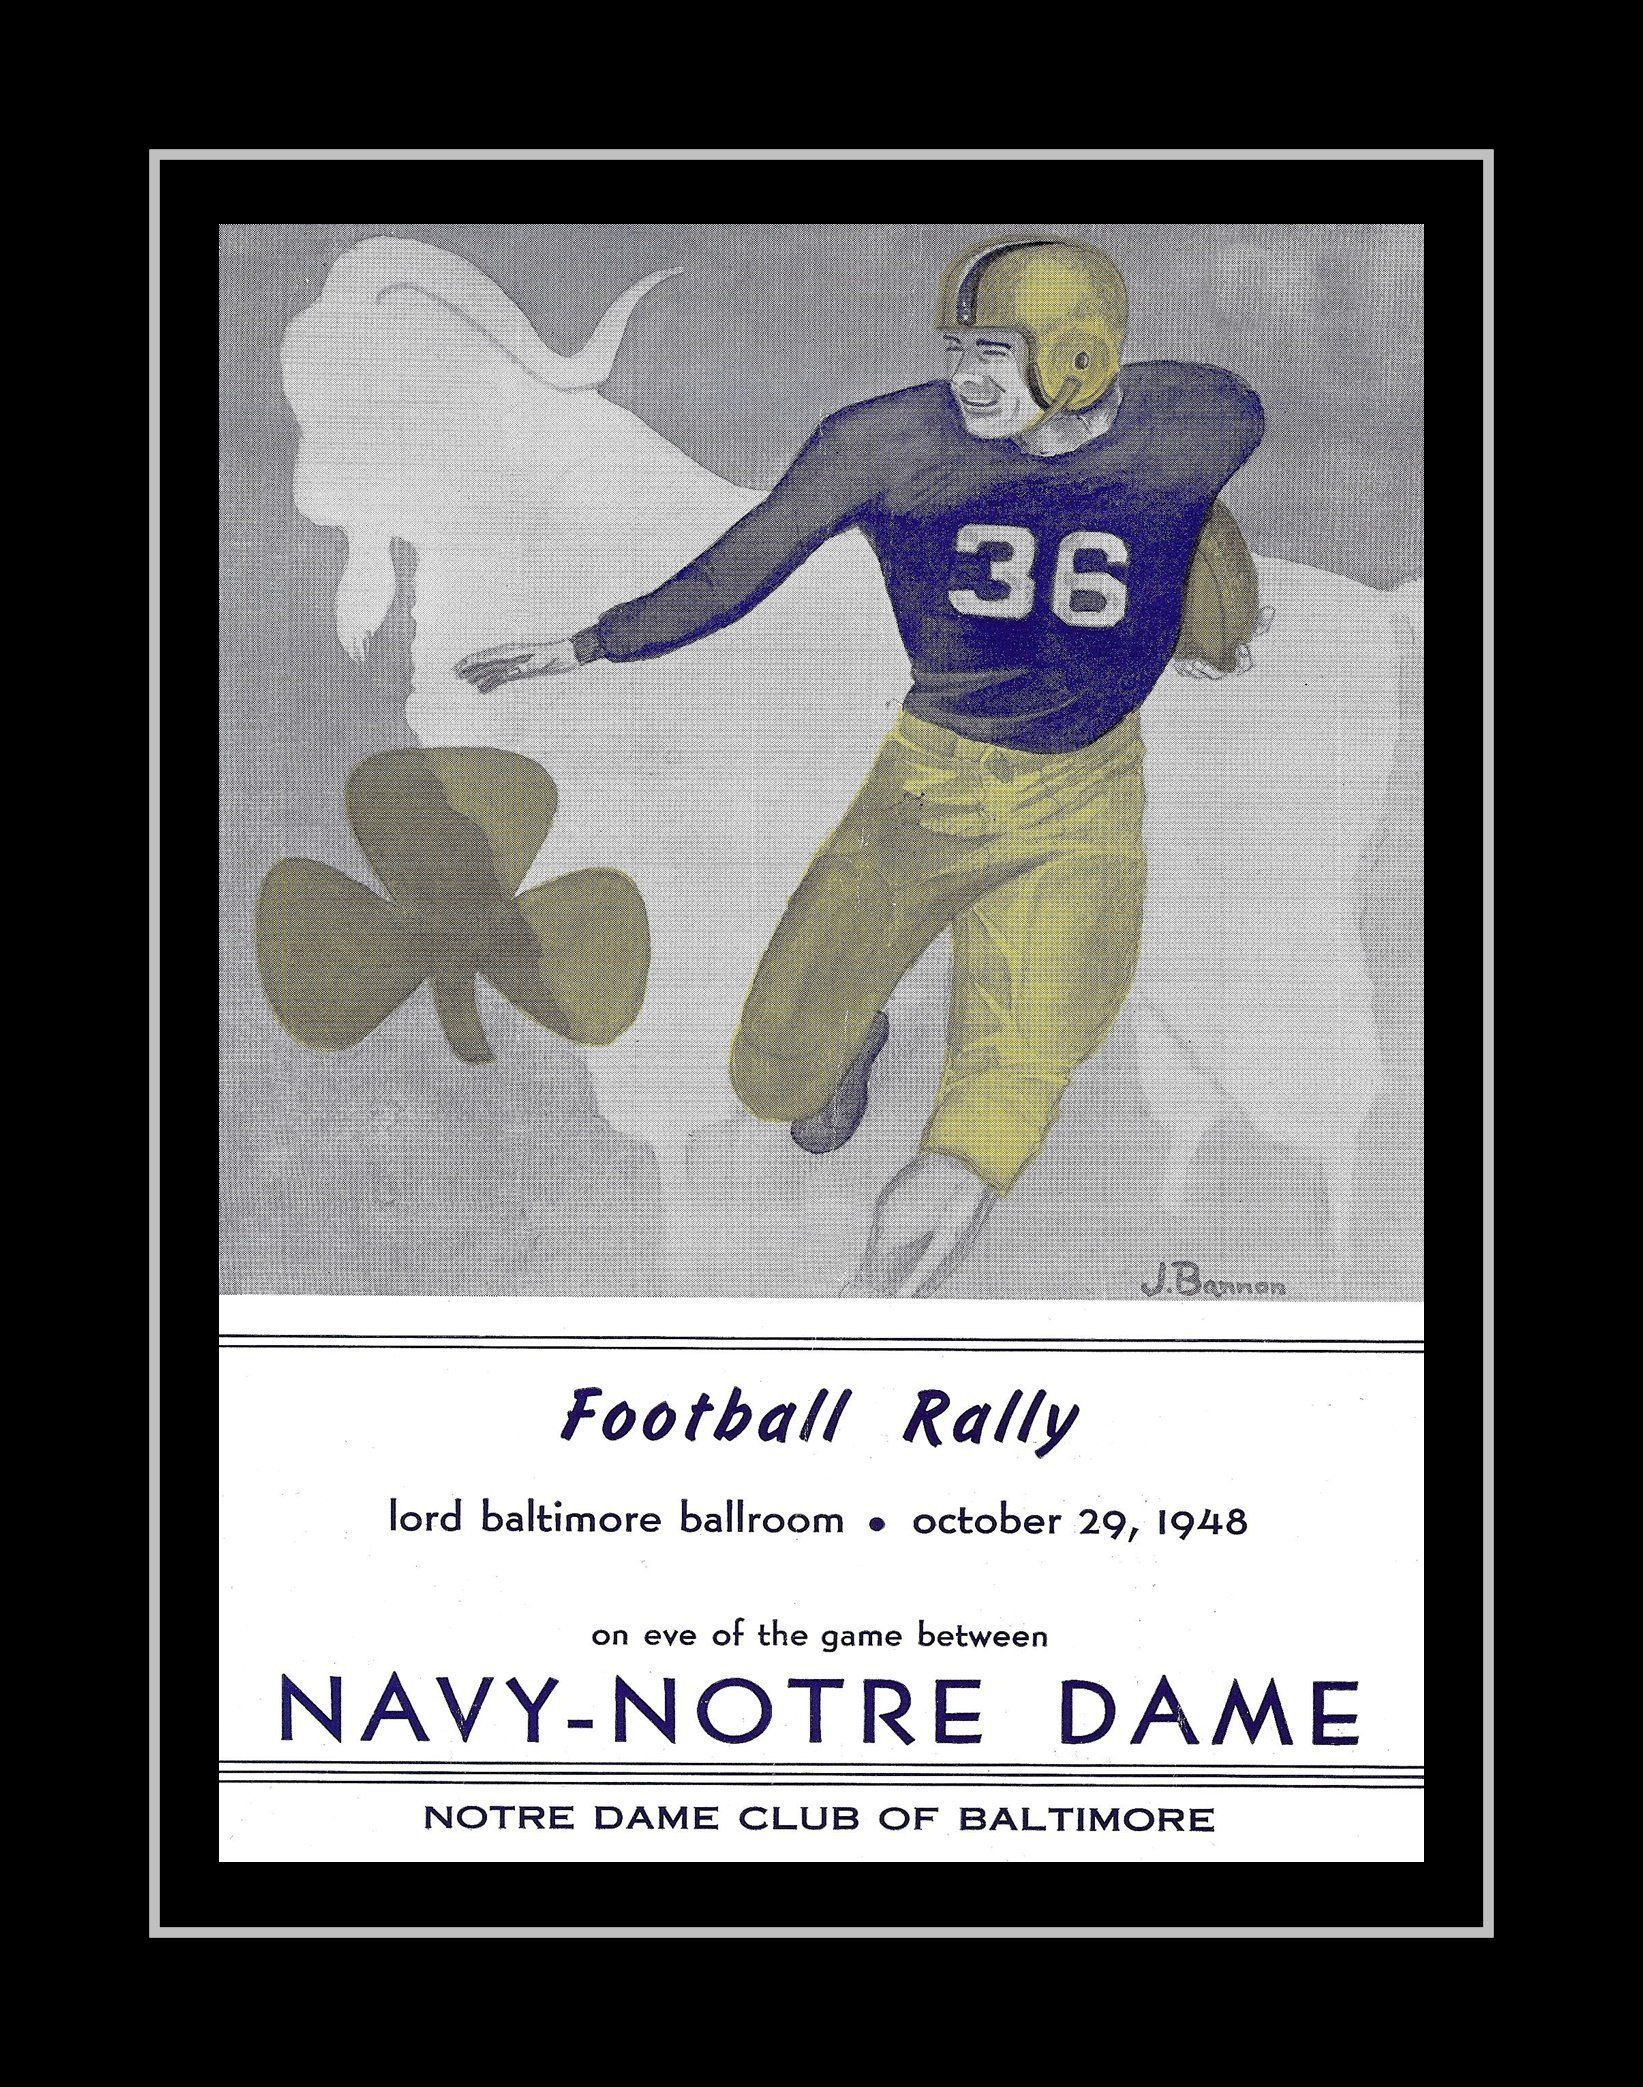 1940s Vintage Notre Dame Navy Football Poster Retro Illustration